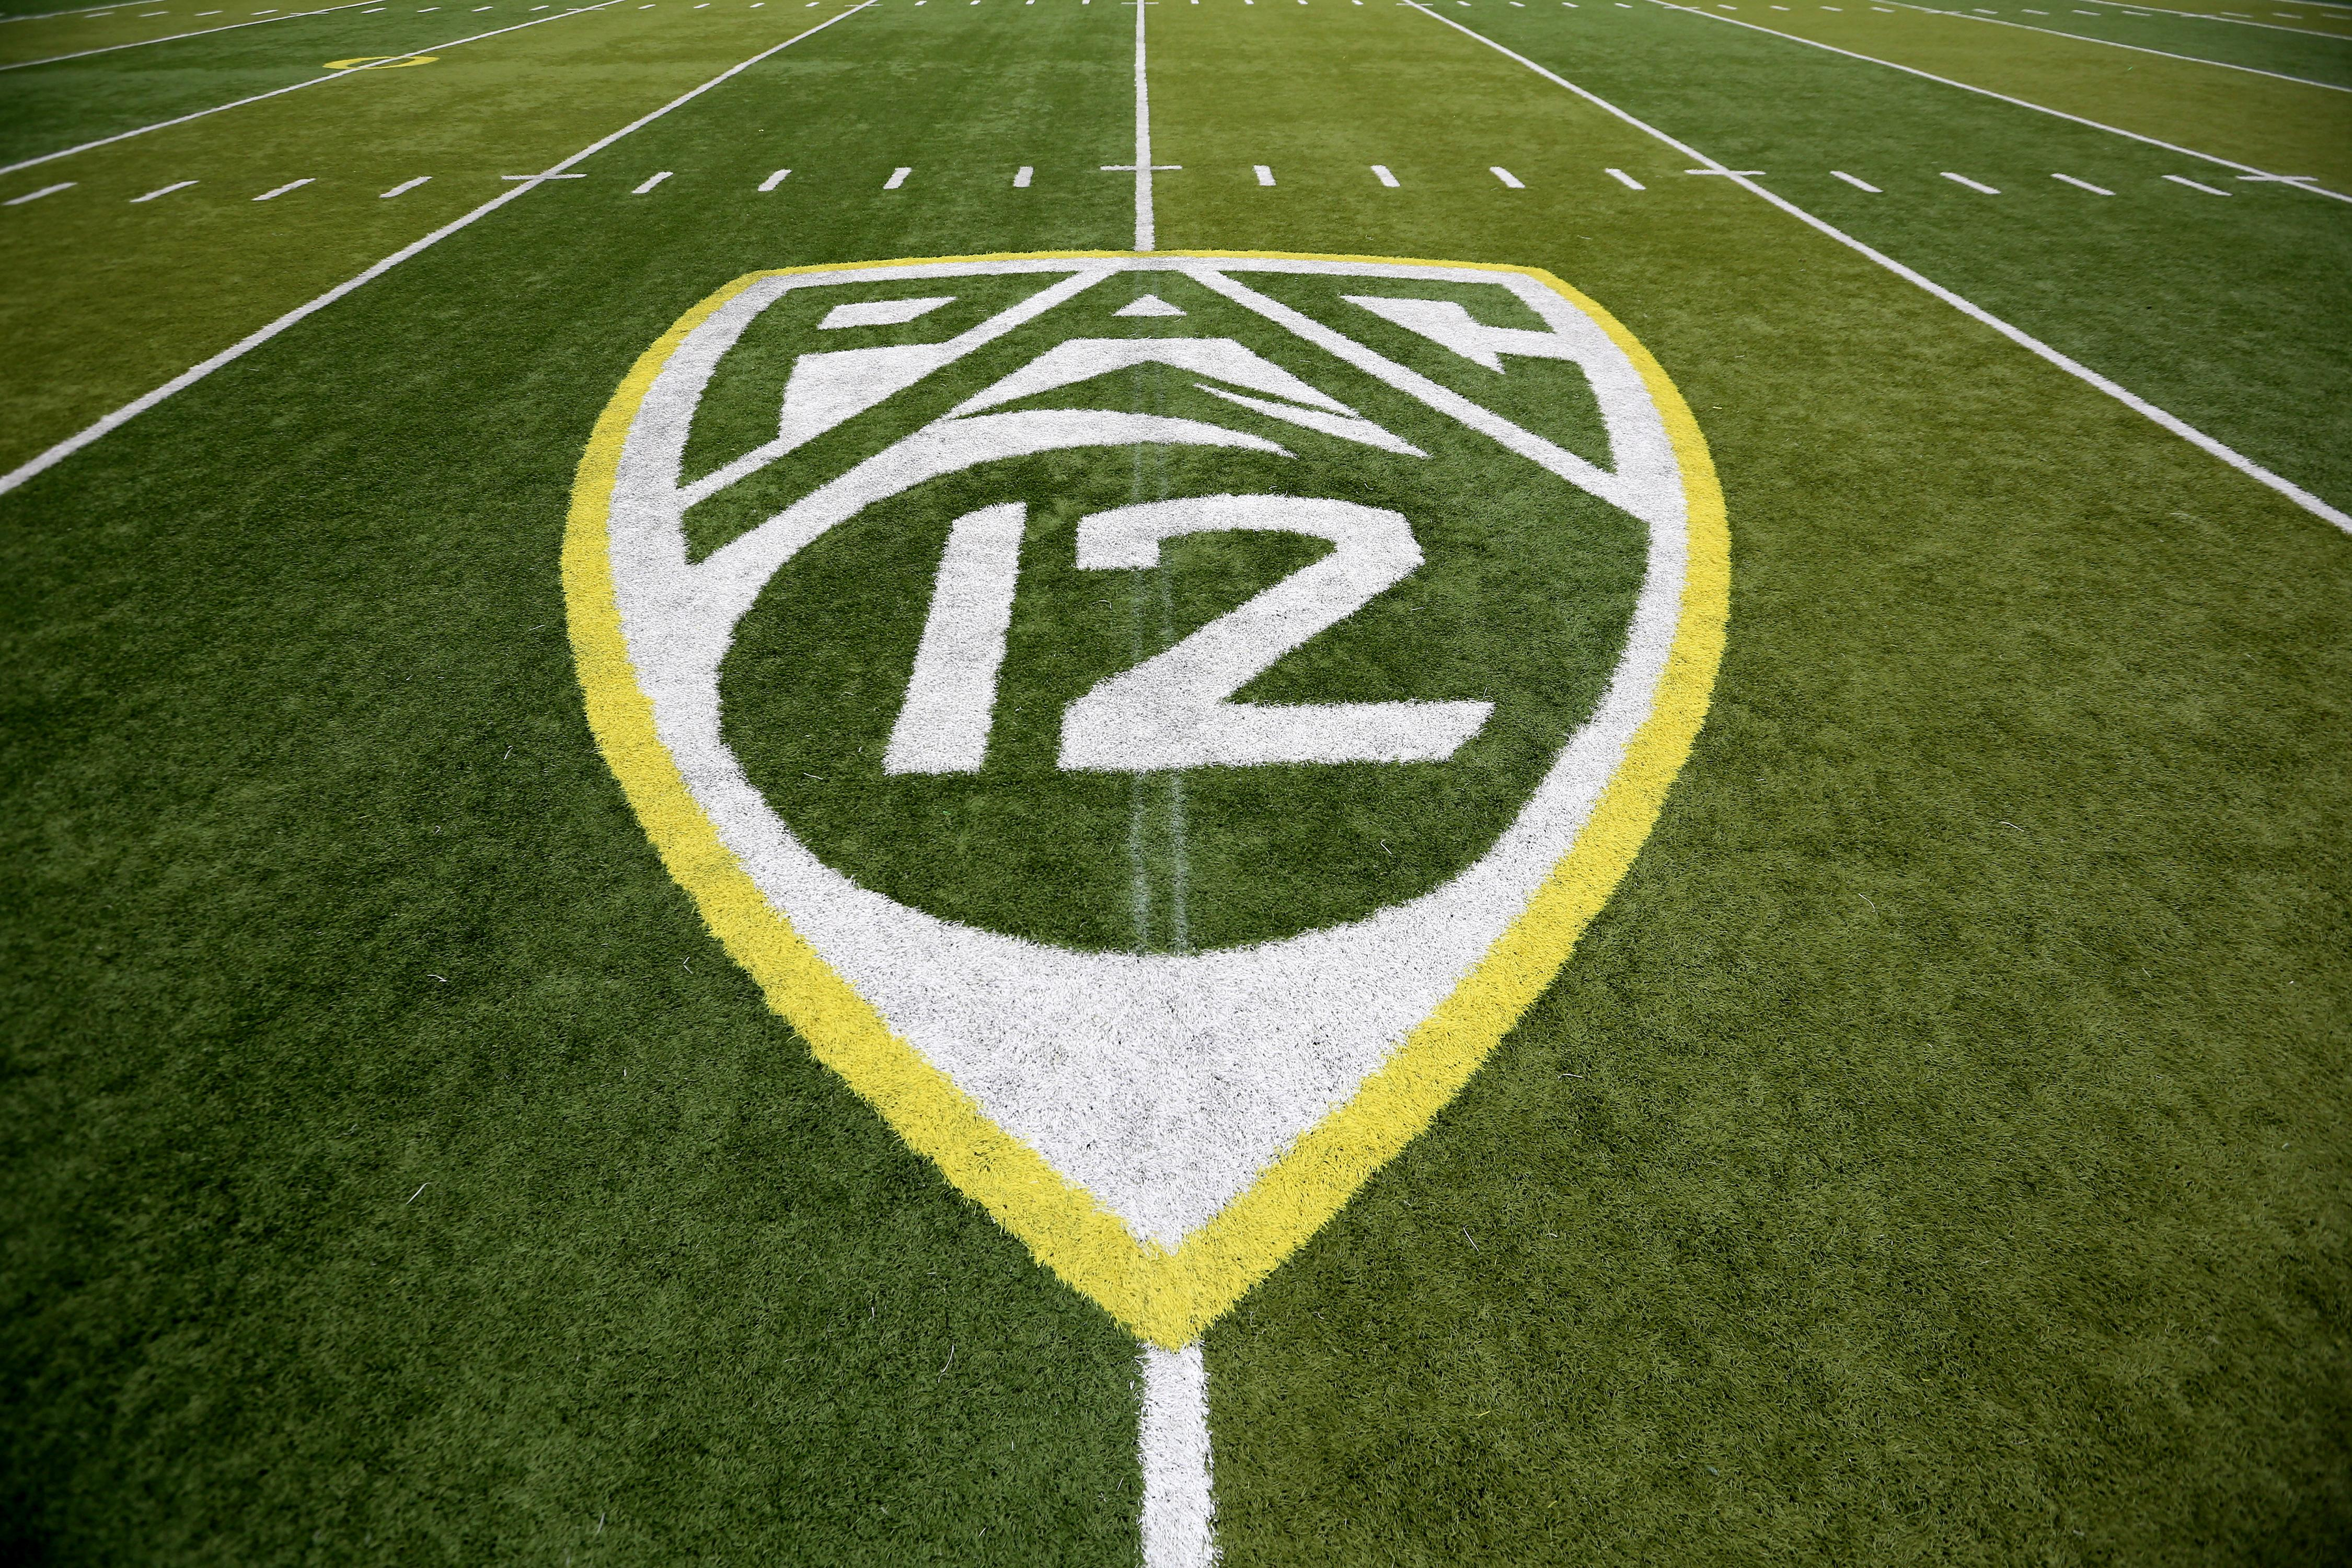 Report: Pac-12 presidents were presented flawed COVID-19 data before voting to delay season